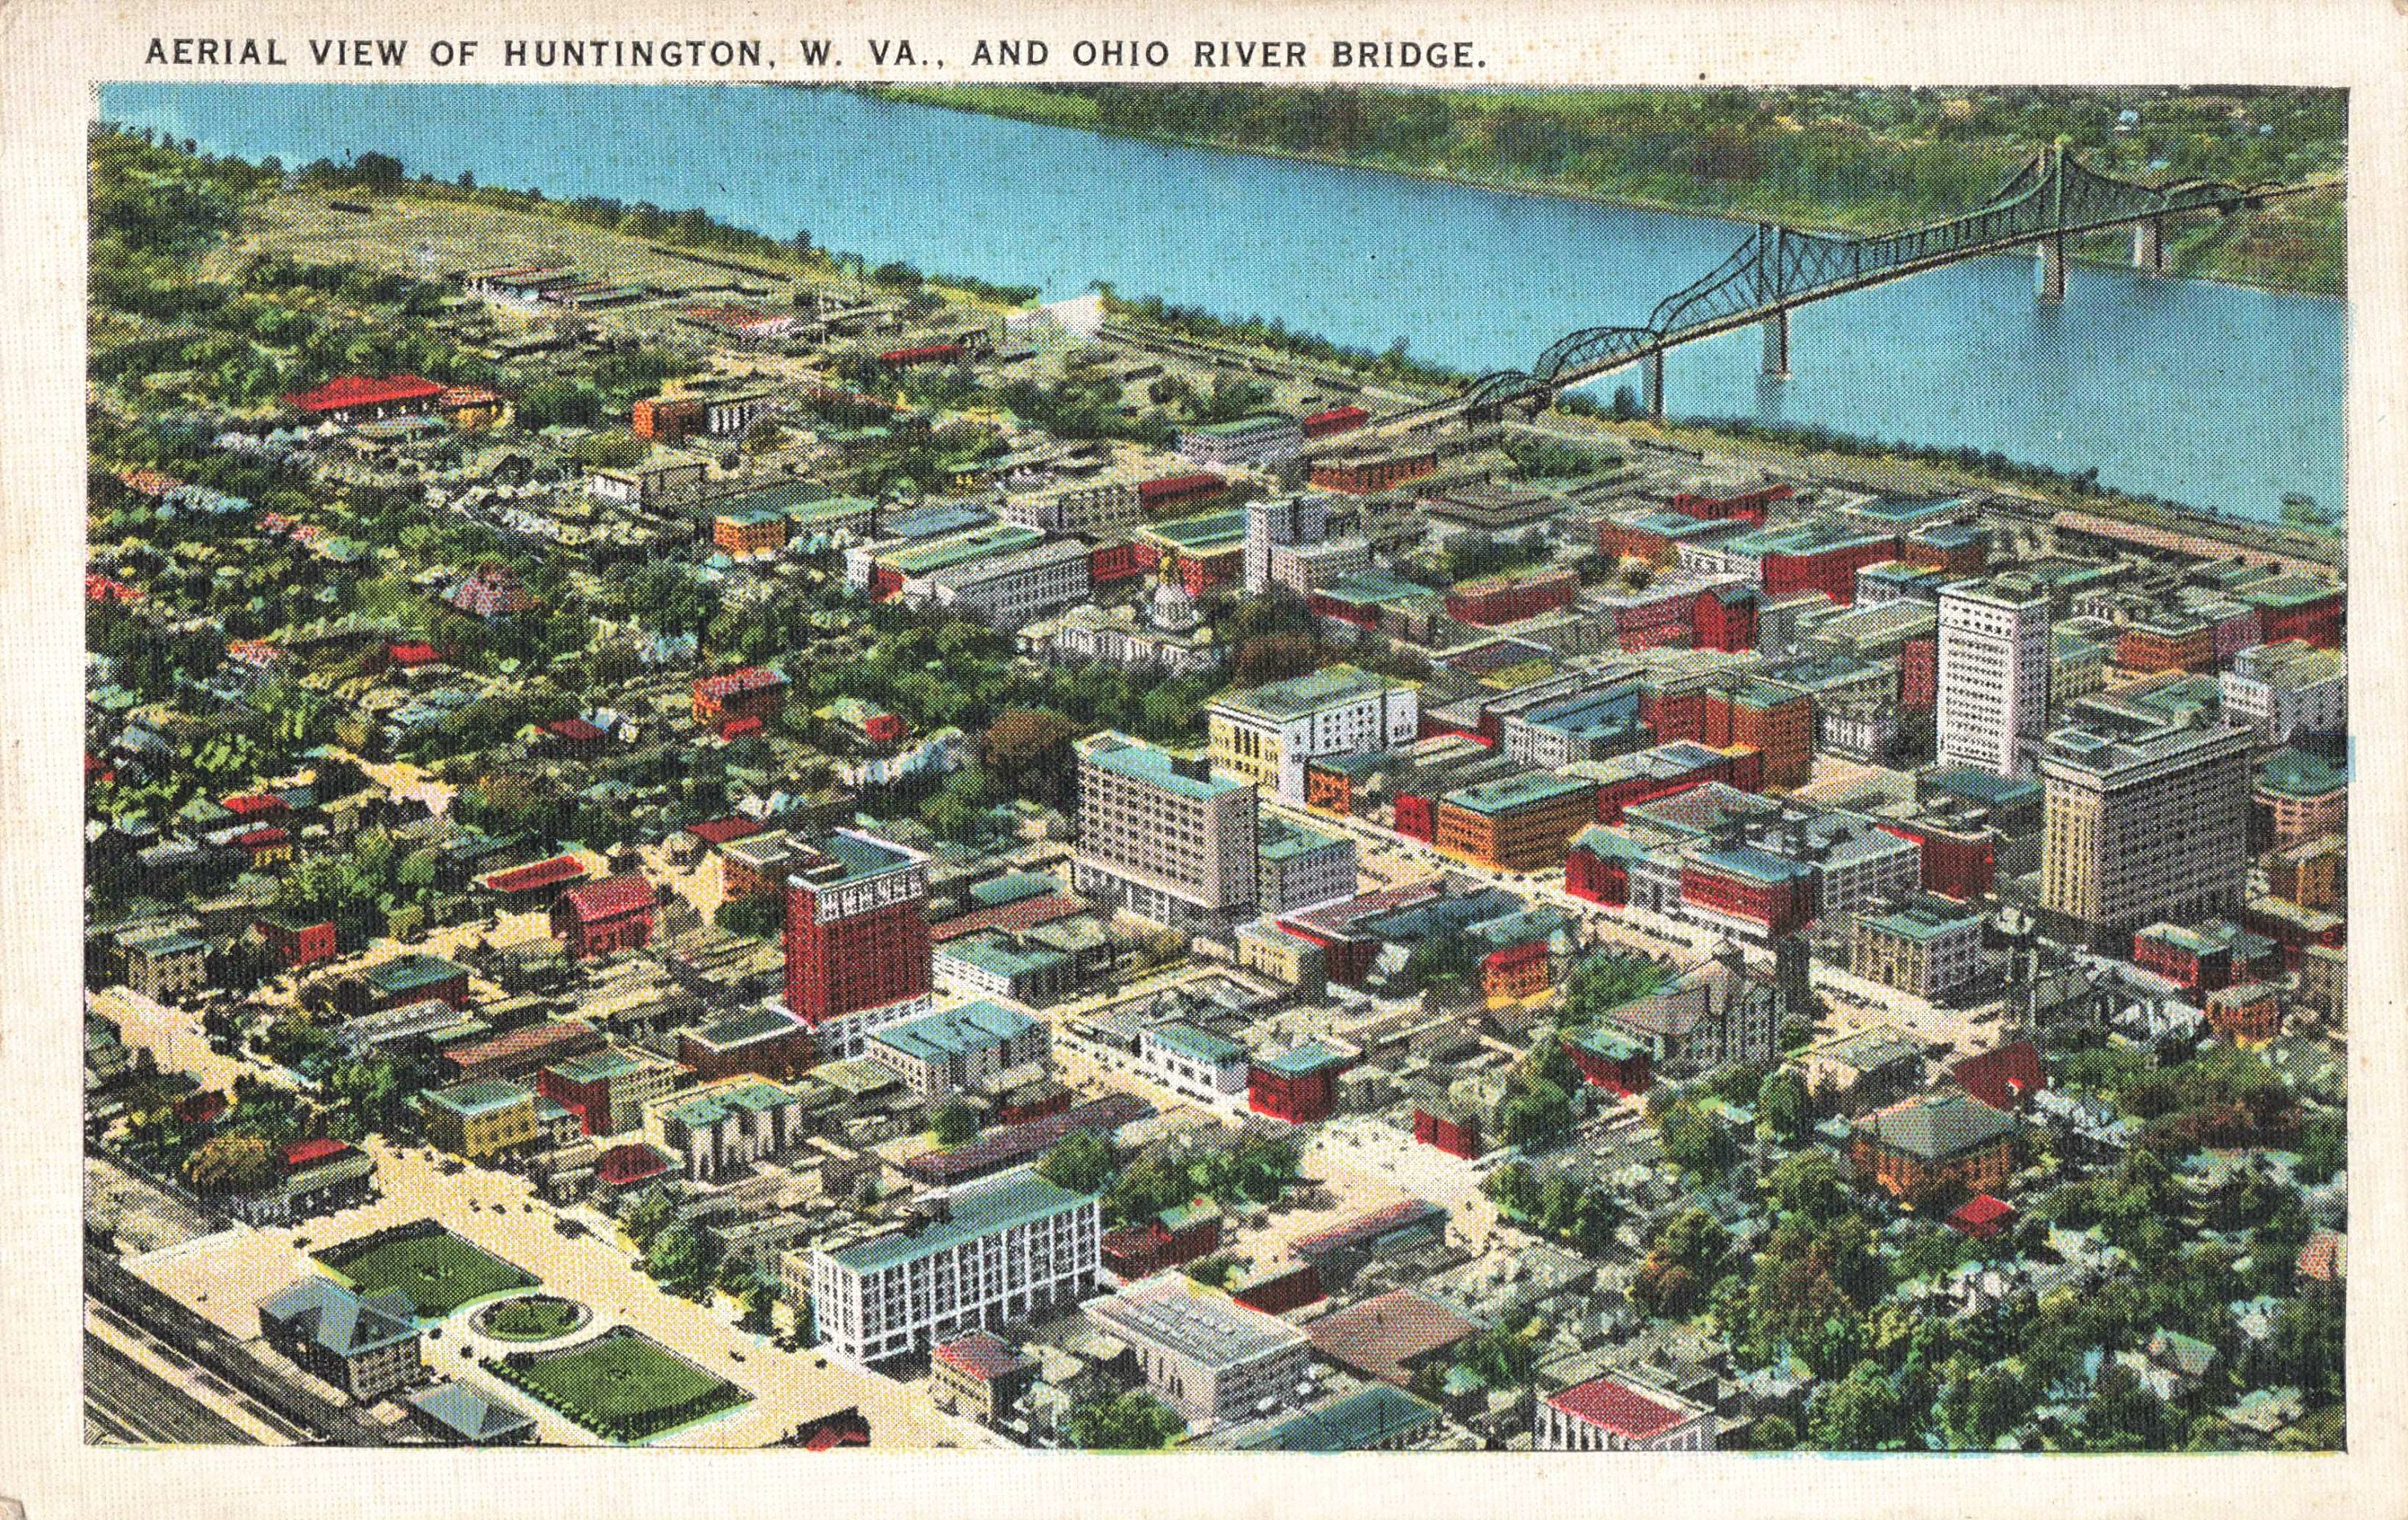 Postcard Aerial View Huntington West Virginia #westvirginia Excited to share this item from my #etsy shop: Postcard Aerial View Huntington West Virginia #westvirginia